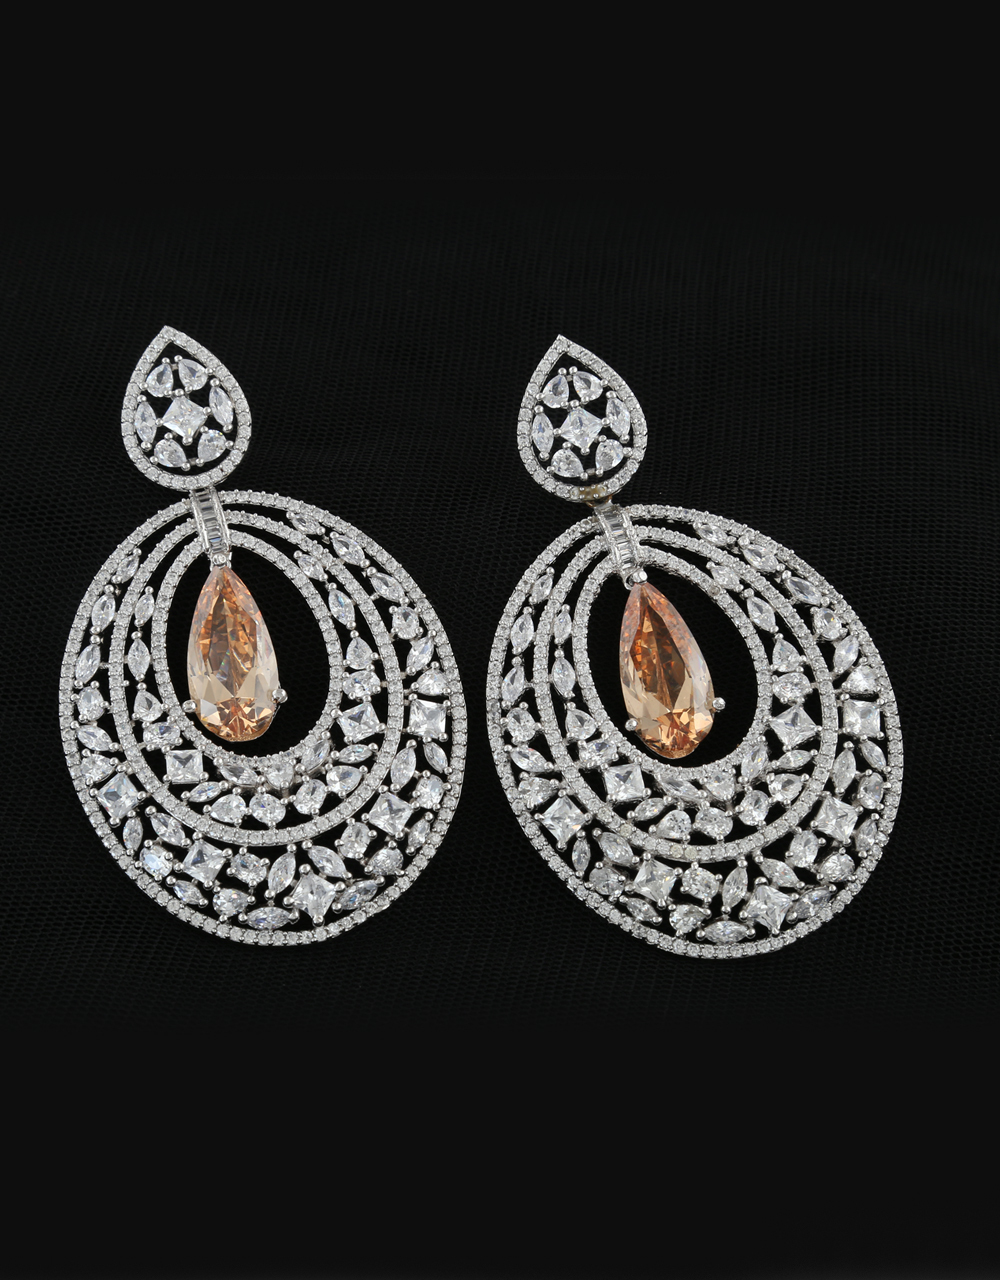 Silver Tone American Diamond Long Earring For Party Wear